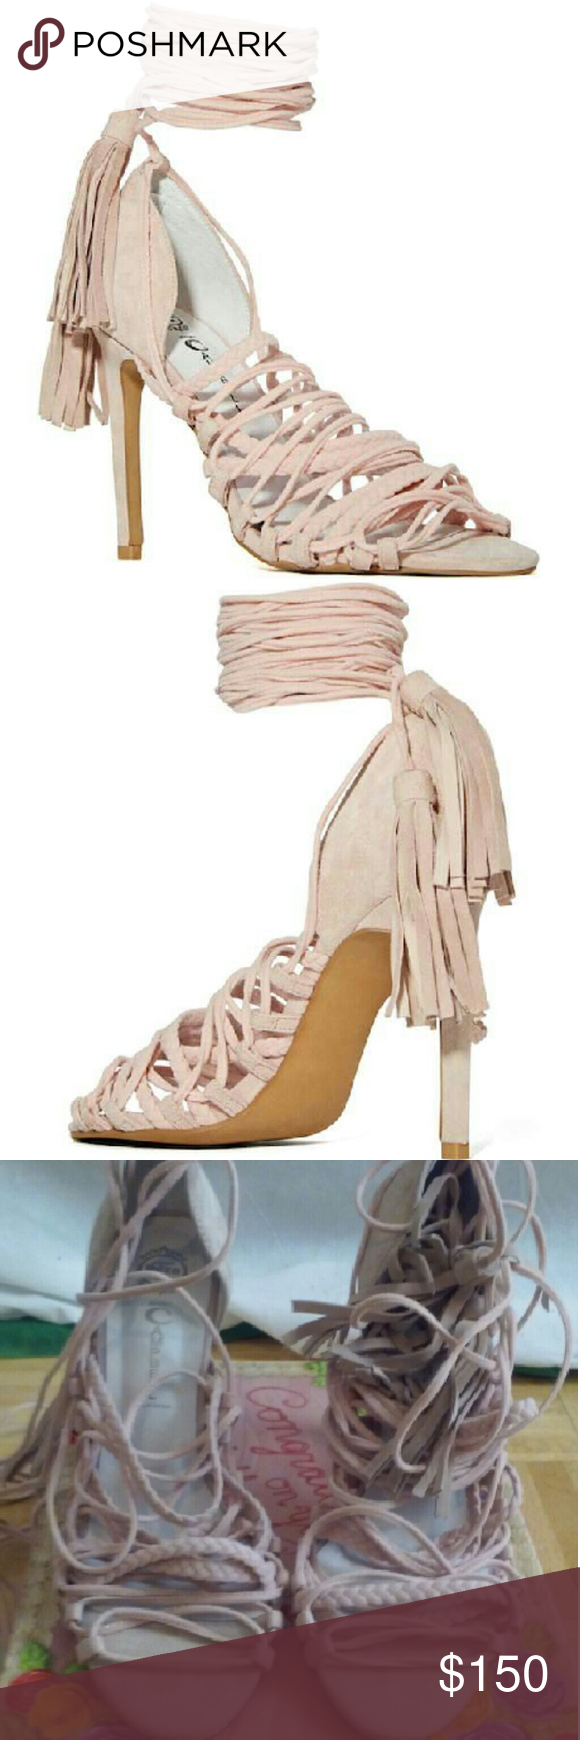 a9d1a443fb62 Jeffrey Campbell Sabra- Pink suede New  Size 9 Color- Pink Gladiator heeled  sandals